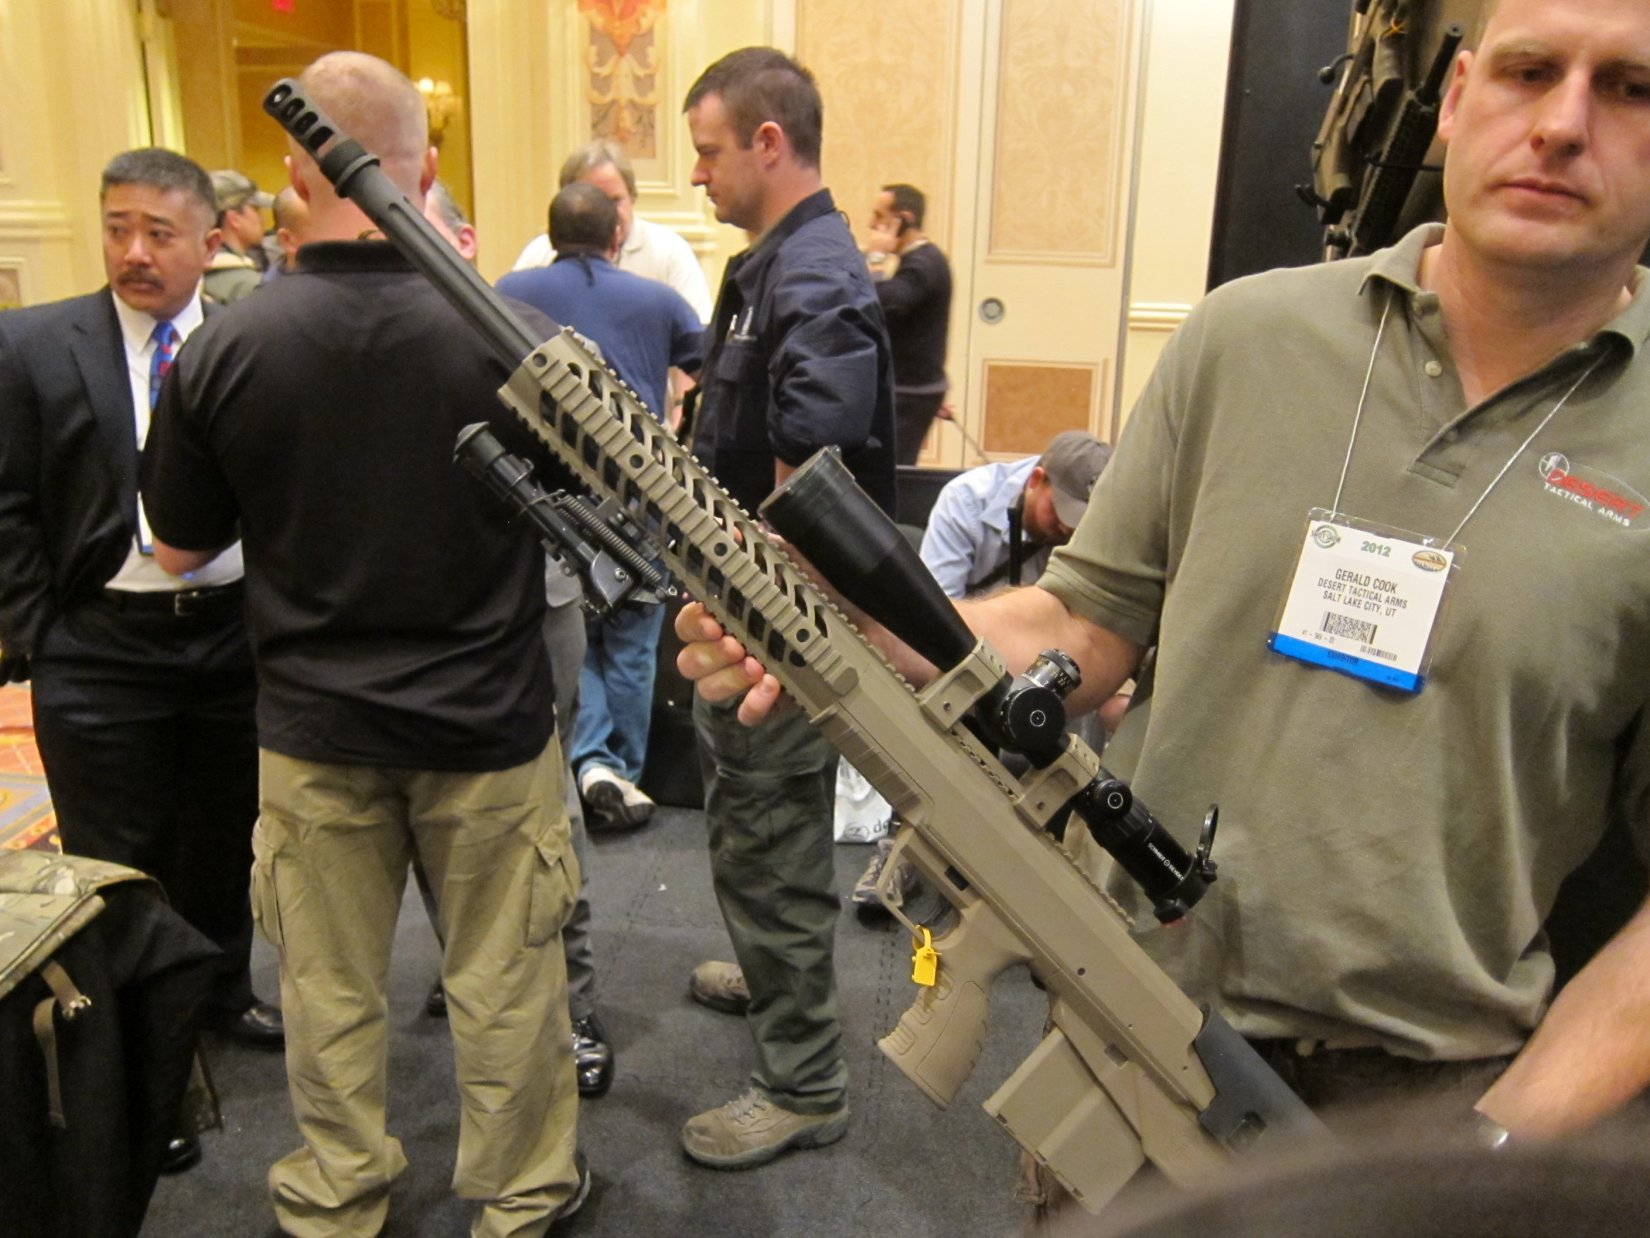 Desert Tactical Arms DTA Hard Target Interdiction HTI Precision Sniper Rifle PSR and SWORD Remgington 700 Modular Stock Chassis SHOT Show 2012 DefenseReview.com DR 6 Desert Tactical Arms DTA HTI (Hard Target Interdiction) Sniper Rifle Chassis/DTA HTI Conversion Kit Modular Bullpup, Bolt Action .50 BMG/.416 Barrett/.408 Cheytac/.375 Cheytac Anti Materiel/Sniper Rifle System Goes Into Production for Civilian Tactical Shooters and Military Special Operations Forces (SOF) Tasked with Long Range Interdiction Operations/Missions (Video!)